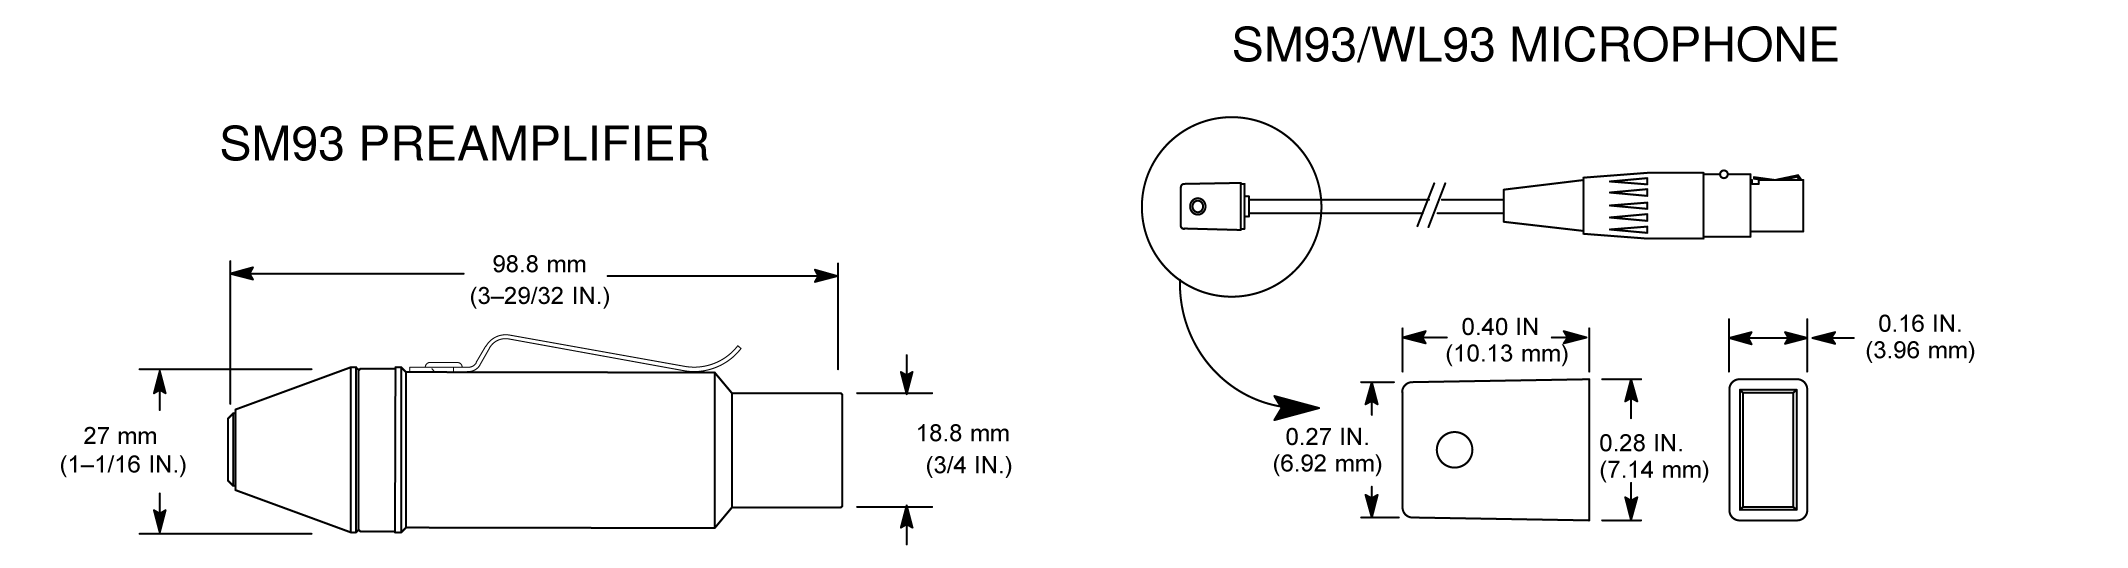 Shure Publications User Guides Wl93 Sm93 Diagram Symbools Of Microphone Overall Dimensions Preamplifier Circuit